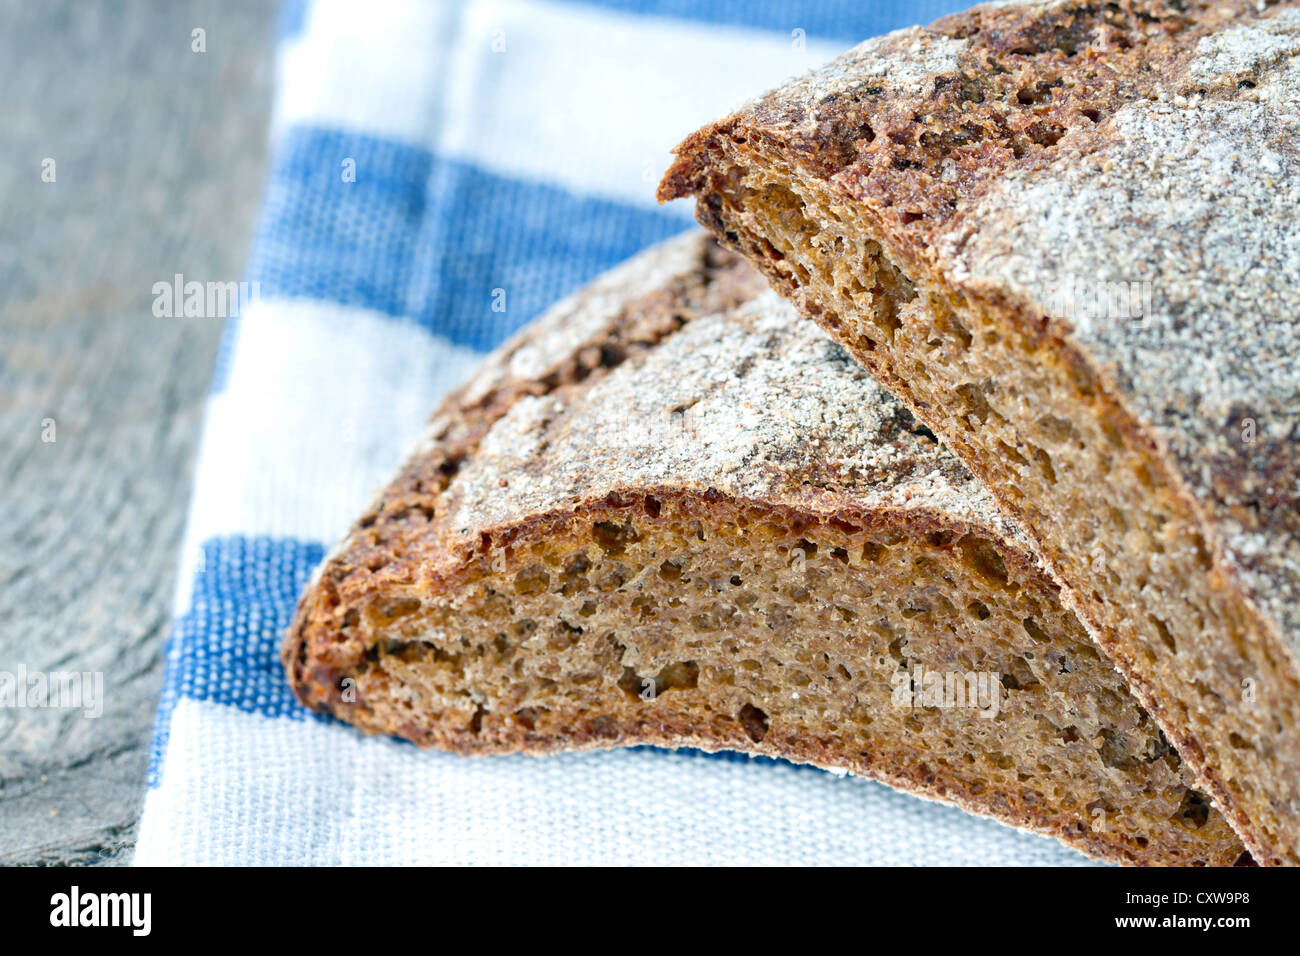 Organic dark wholegrain rye bread, a new superfood, closeup on rustic wooden background and white and blue striped - Stock Image